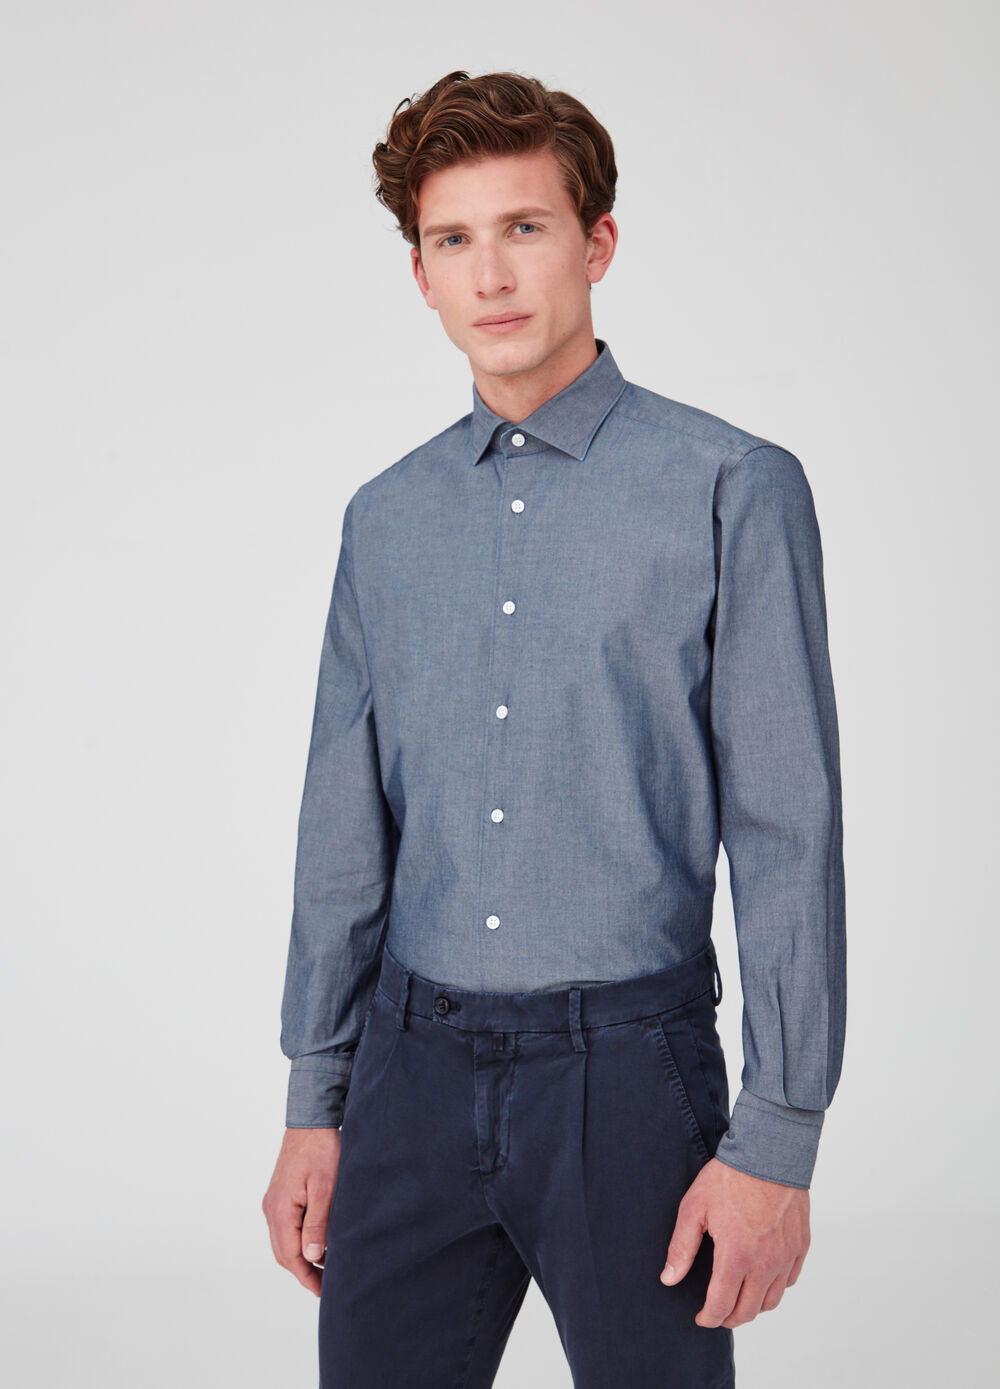 Rumford cotton shirt with bluff collar